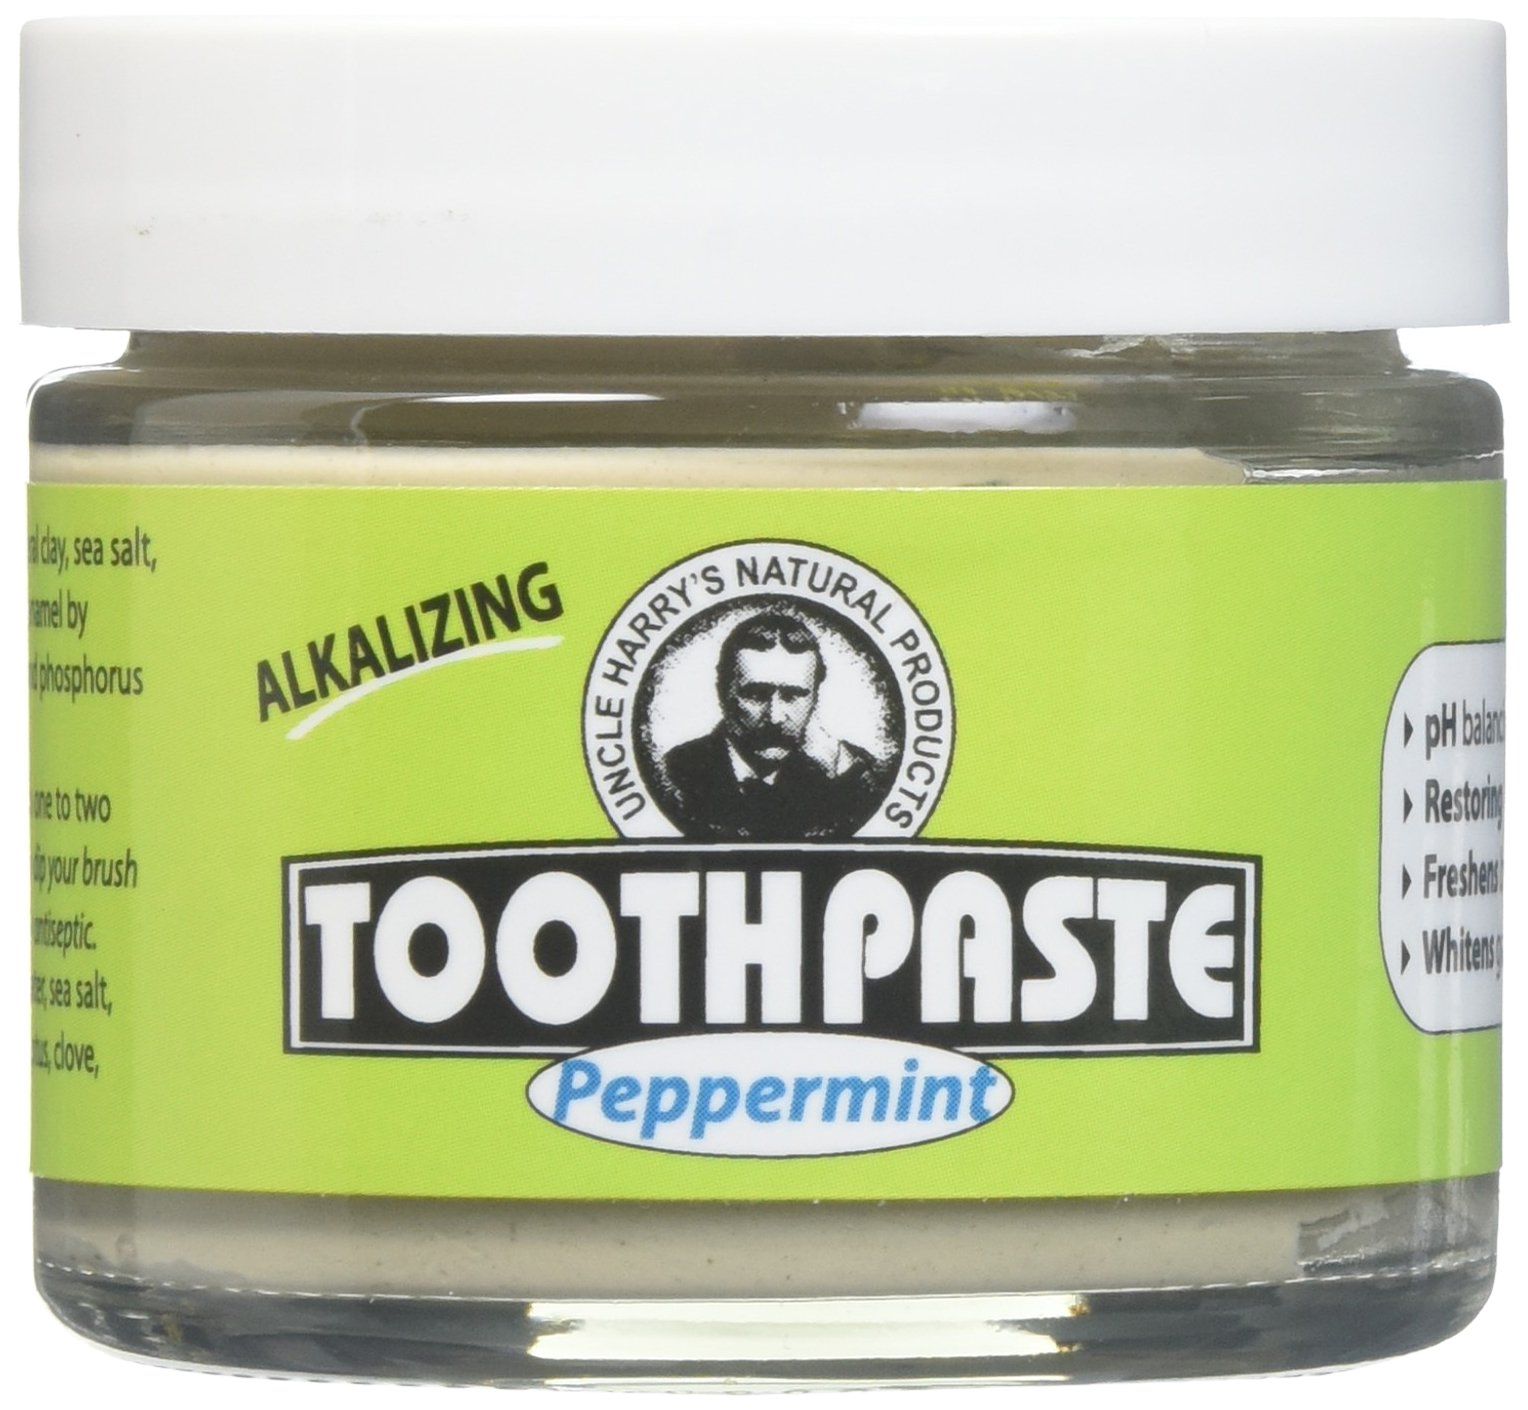 Uncle Harry's Fluoride Free Toothpaste - Peppermint (3 oz Glass jar) … (4)